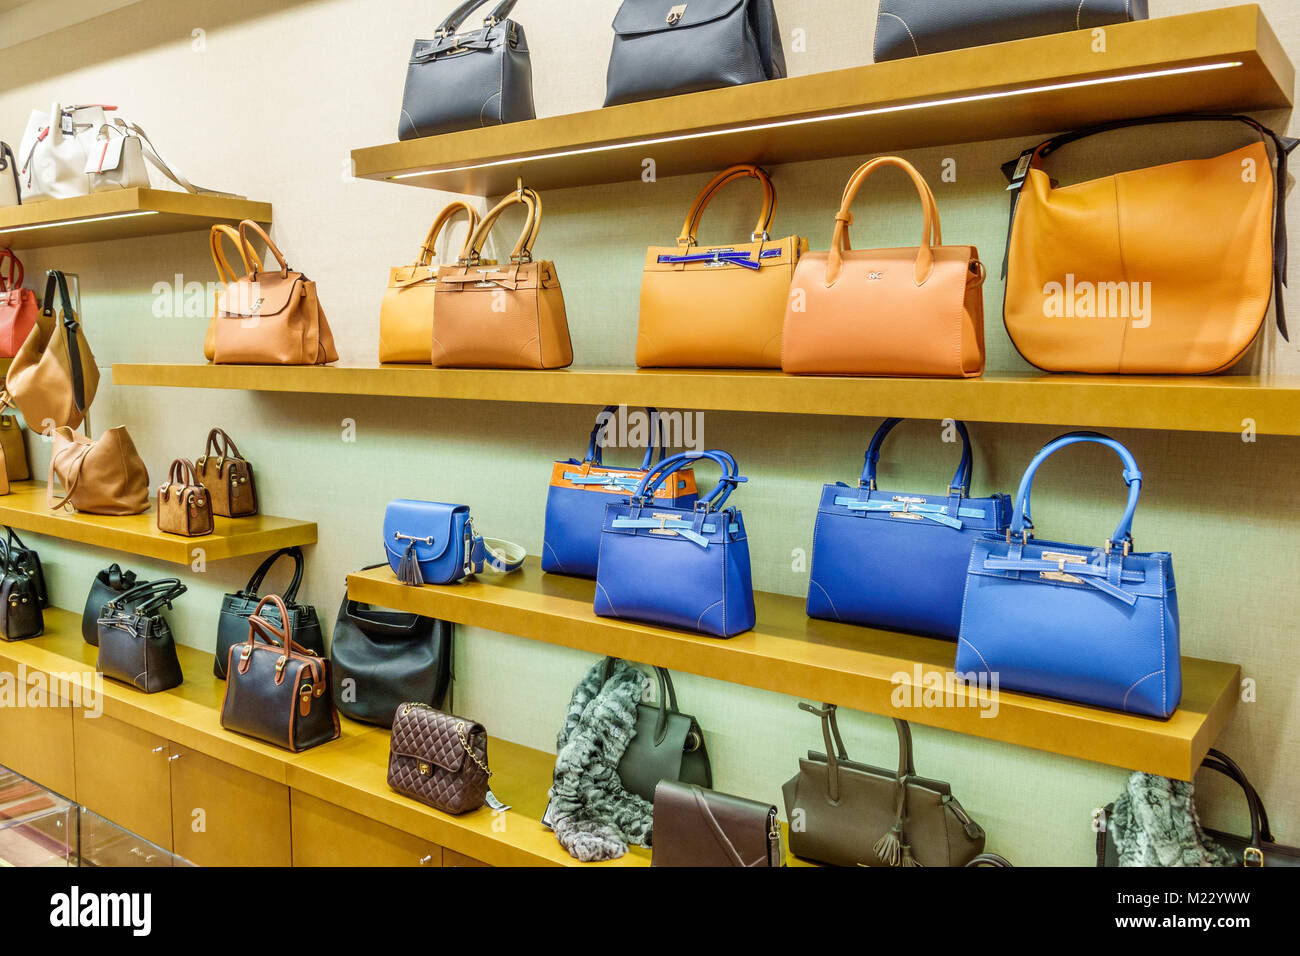 Buenos Aires Argentina Galerias Pacifico mall shopping Rossi & Caruso designer boutique Argentine leather goods - Stock Image